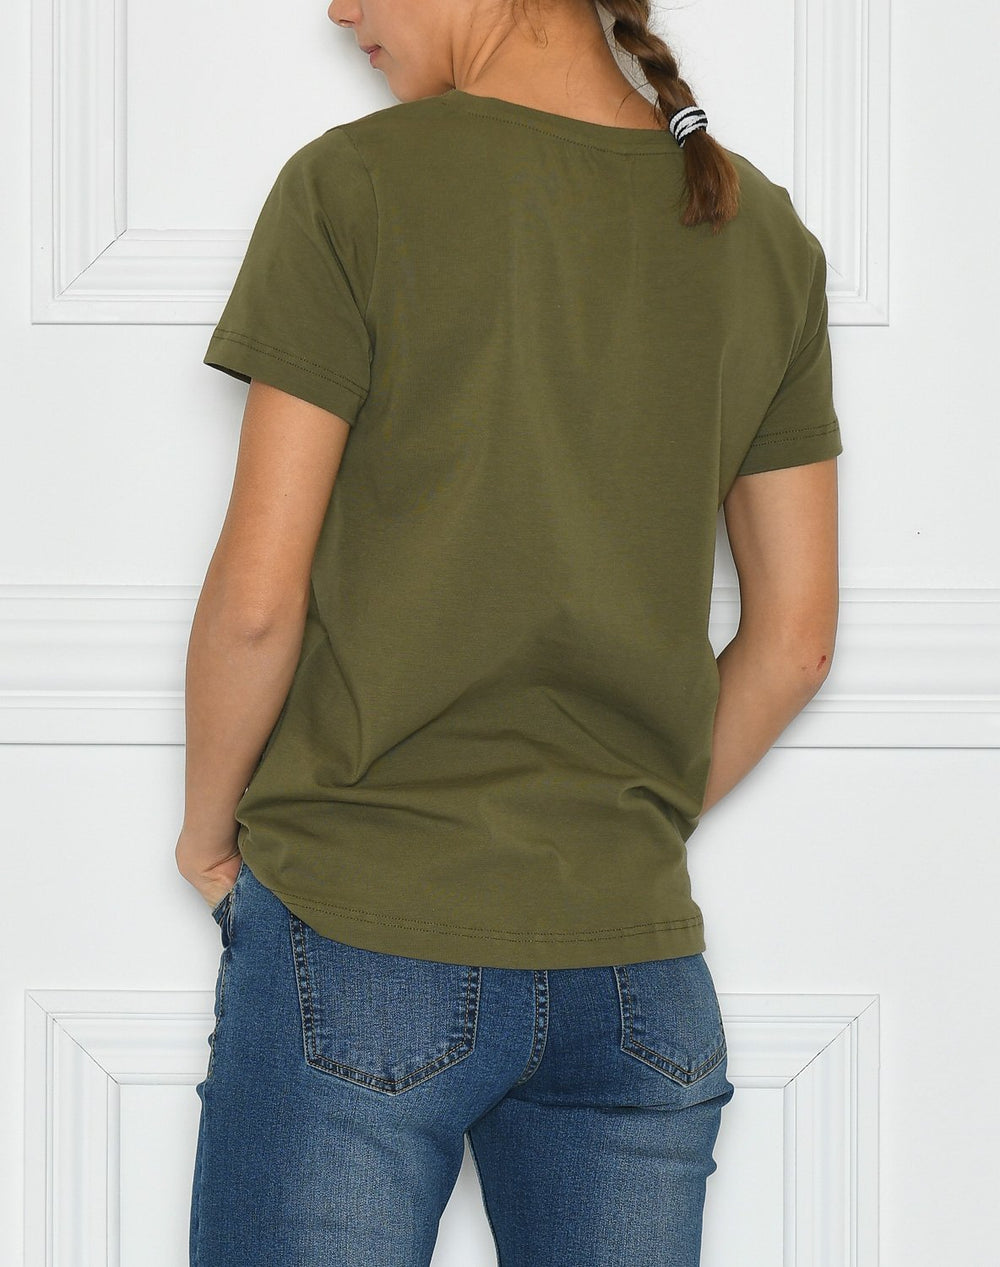 Culture CUgabriella t-shirt burnt olive - Online-Mode